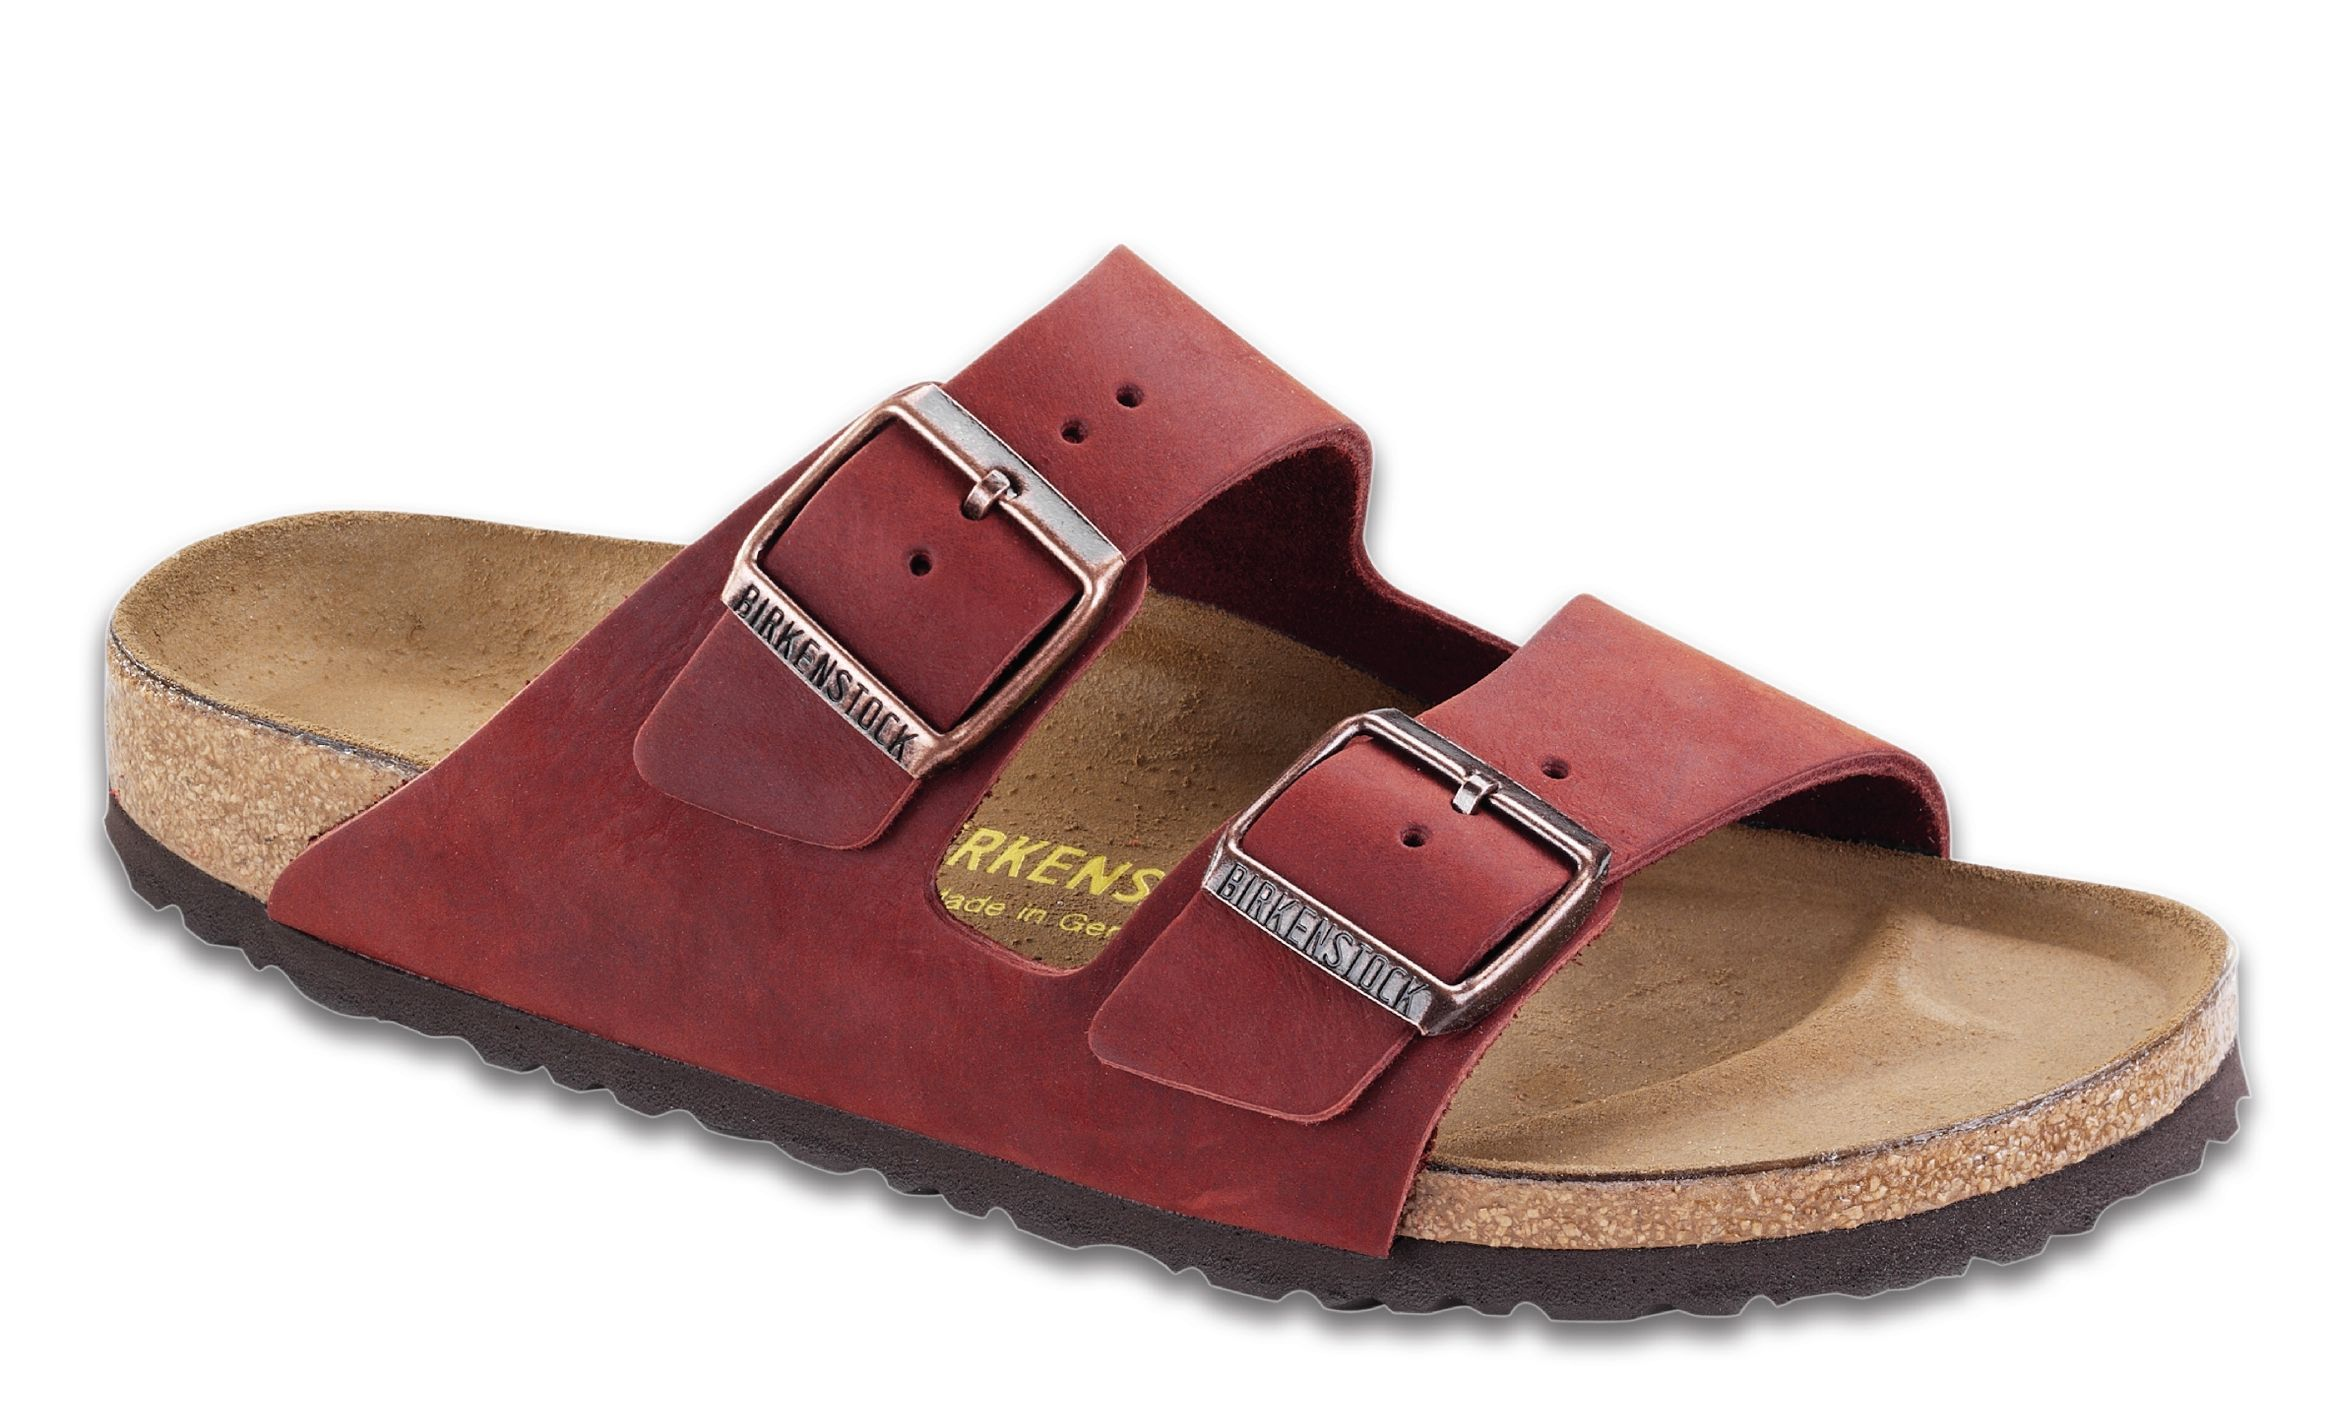 d42219b52 birkenstock arizona henna oiled leather Classic two-strap style sandals in  a variety of materials with fully adjustable straps and shock-absorbing EVA  sole.